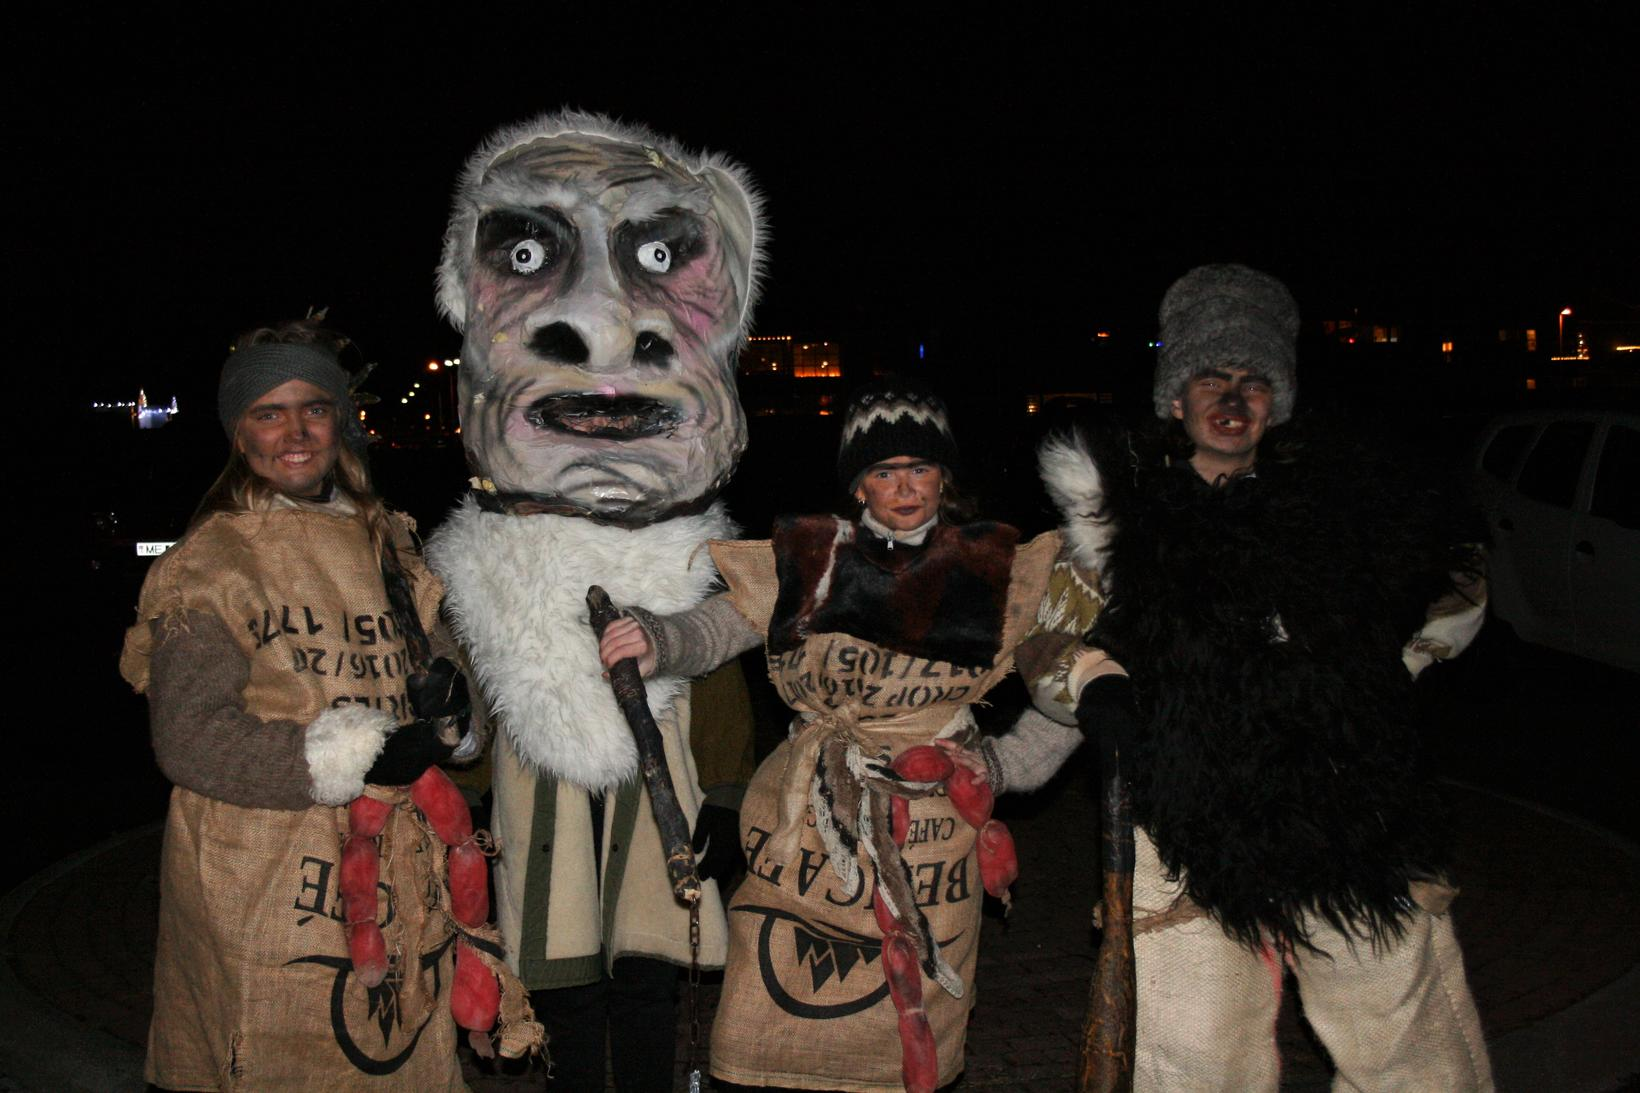 Some of the scary creatures seen in Reykjanesbær last night.